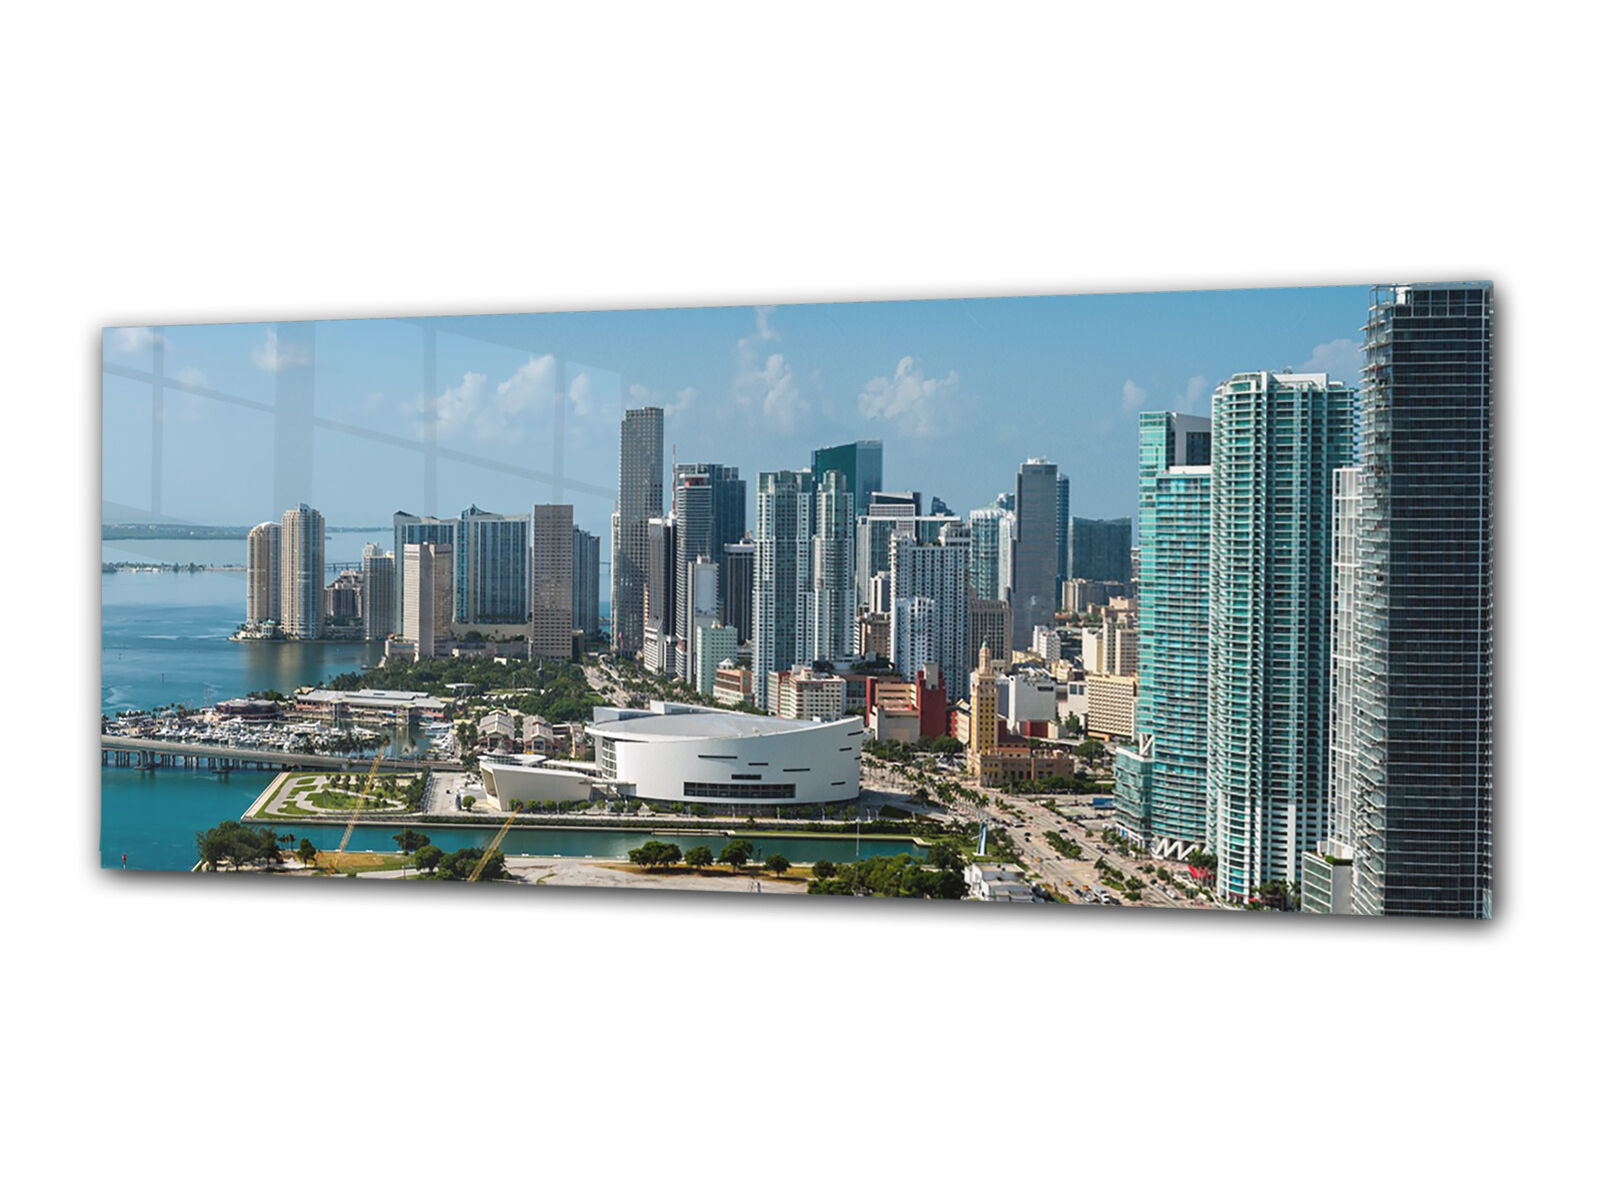 Glass Print Wall Art 80x30 cm Image on Glass Decorative Wall Picture 44182157